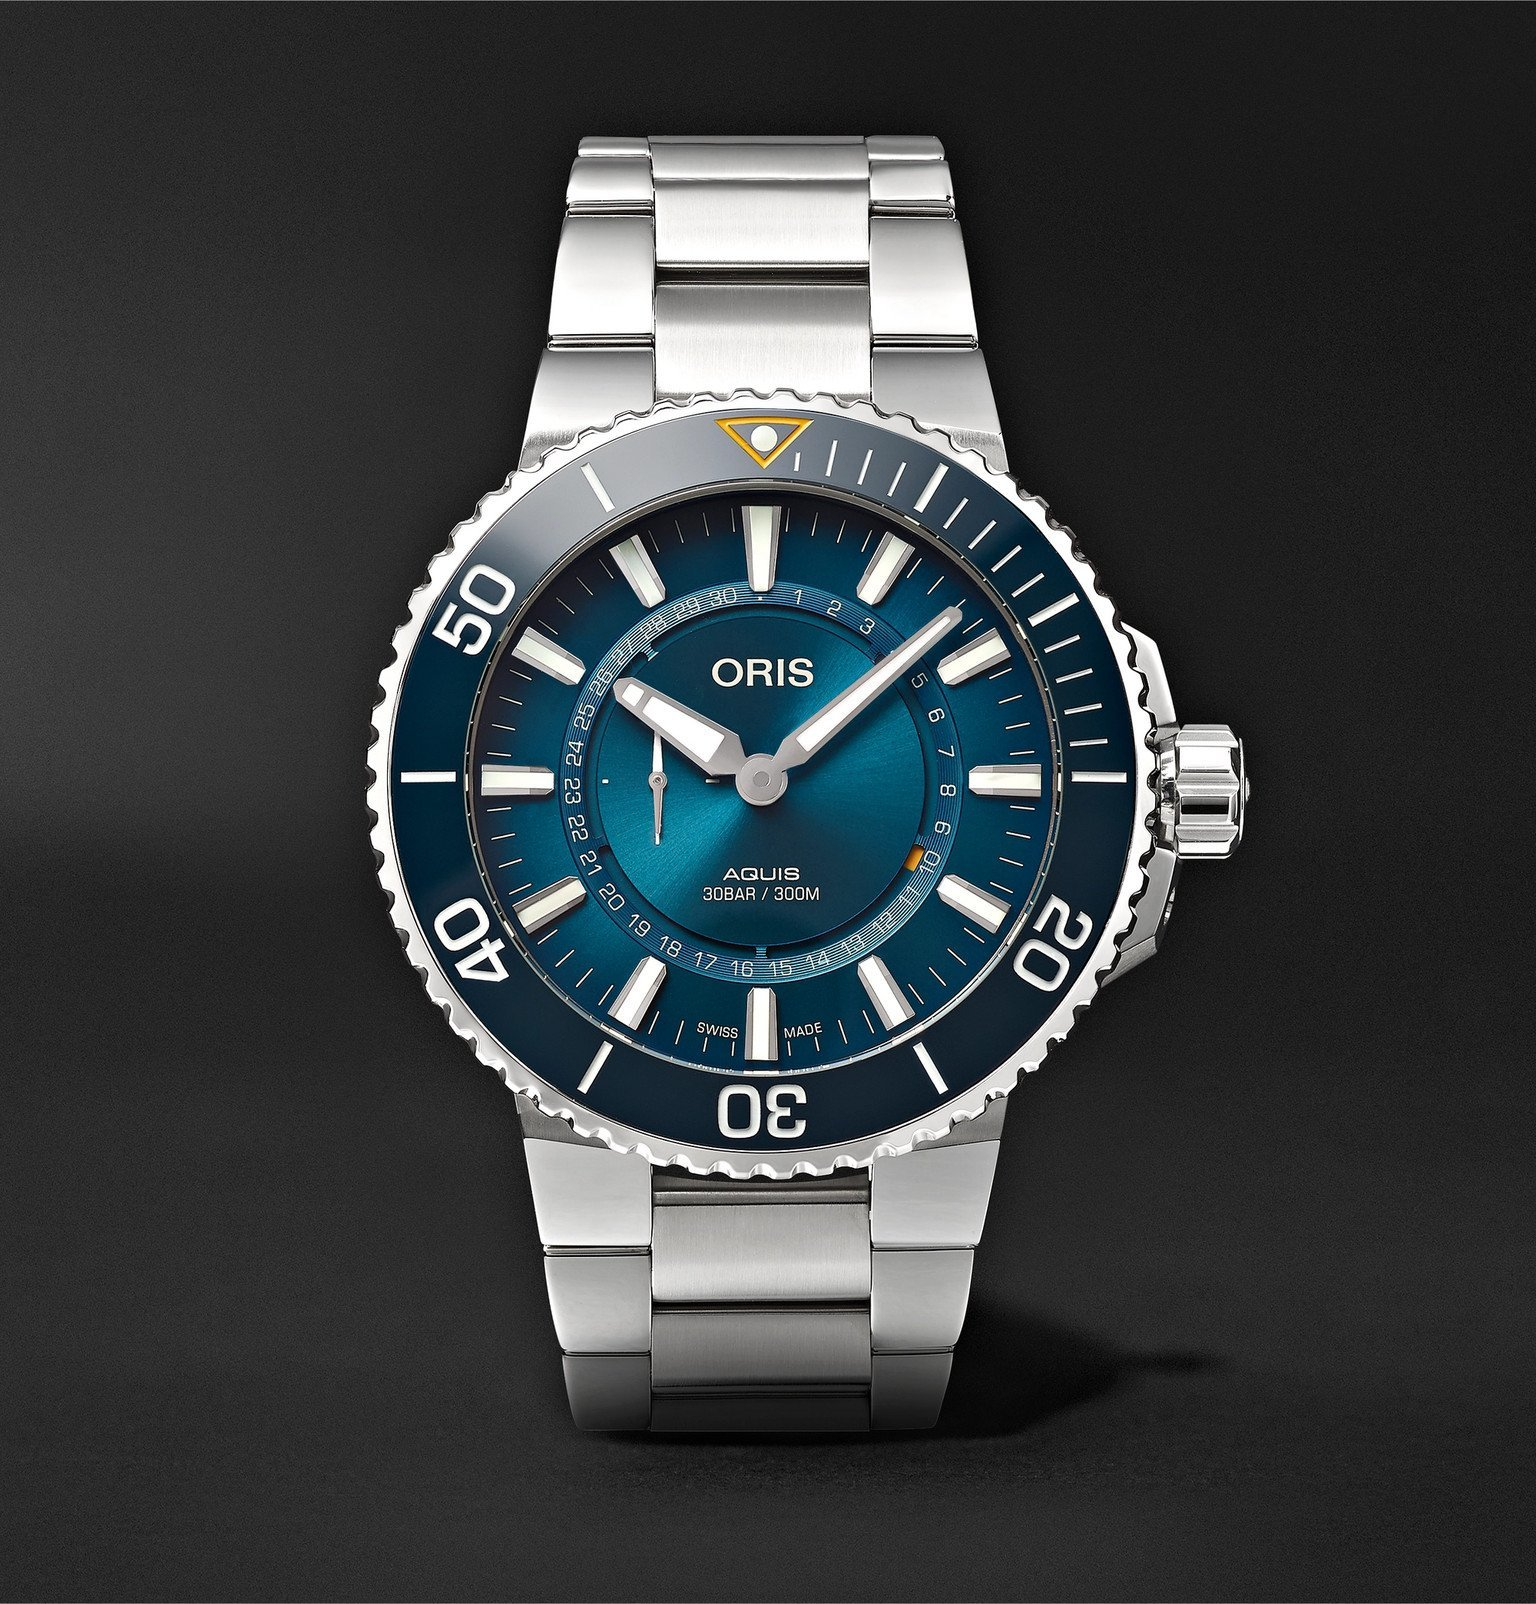 Photo: Oris - Great Barrier Reef III Limited Edition Automatic 43.5mm Stainless Steel Watch - Blue